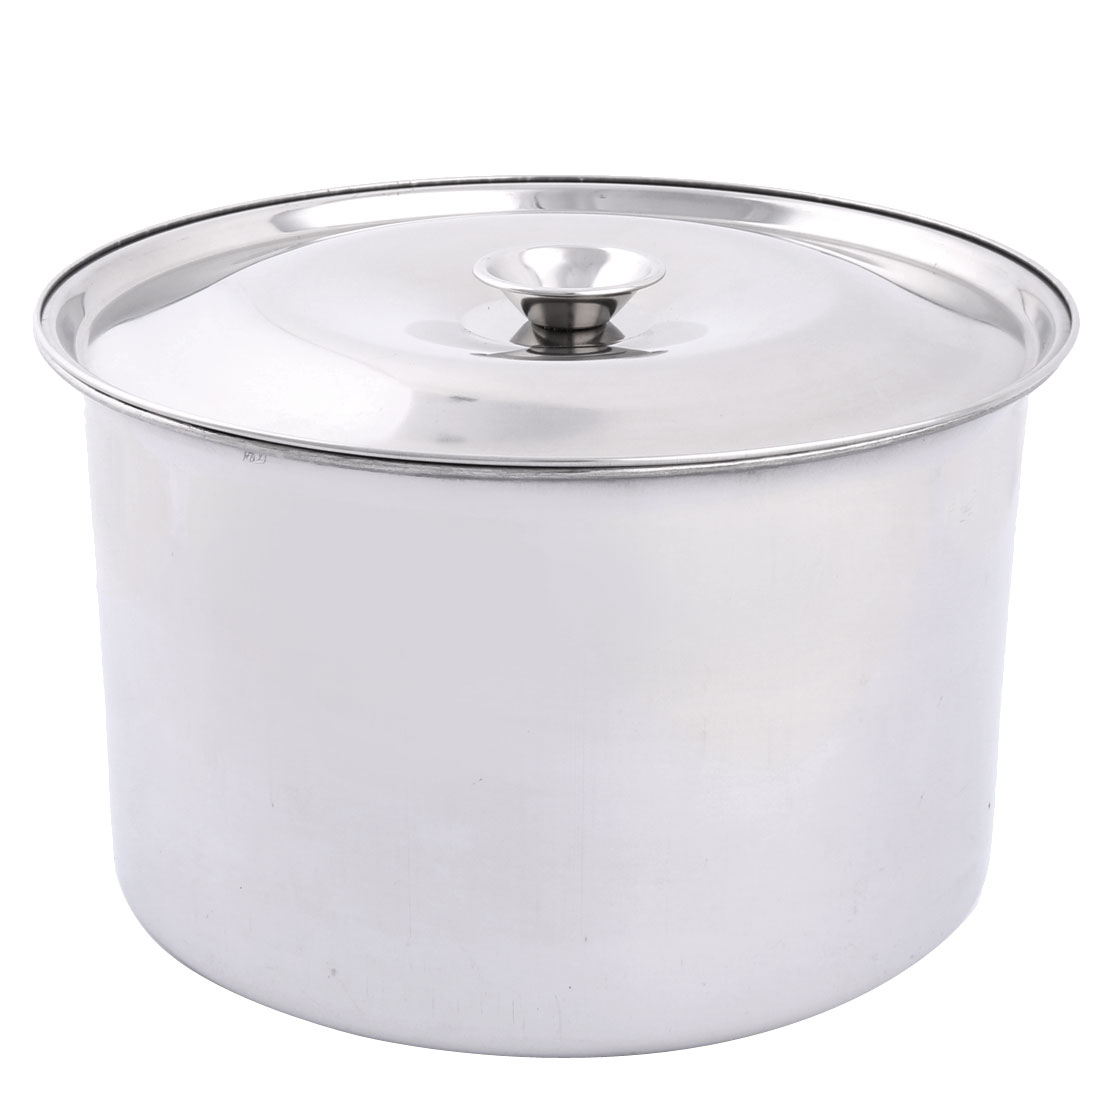 Kitchen Stainless Steel Food Soup Salad Egg Mixing Bowl Container 22cm Diameter